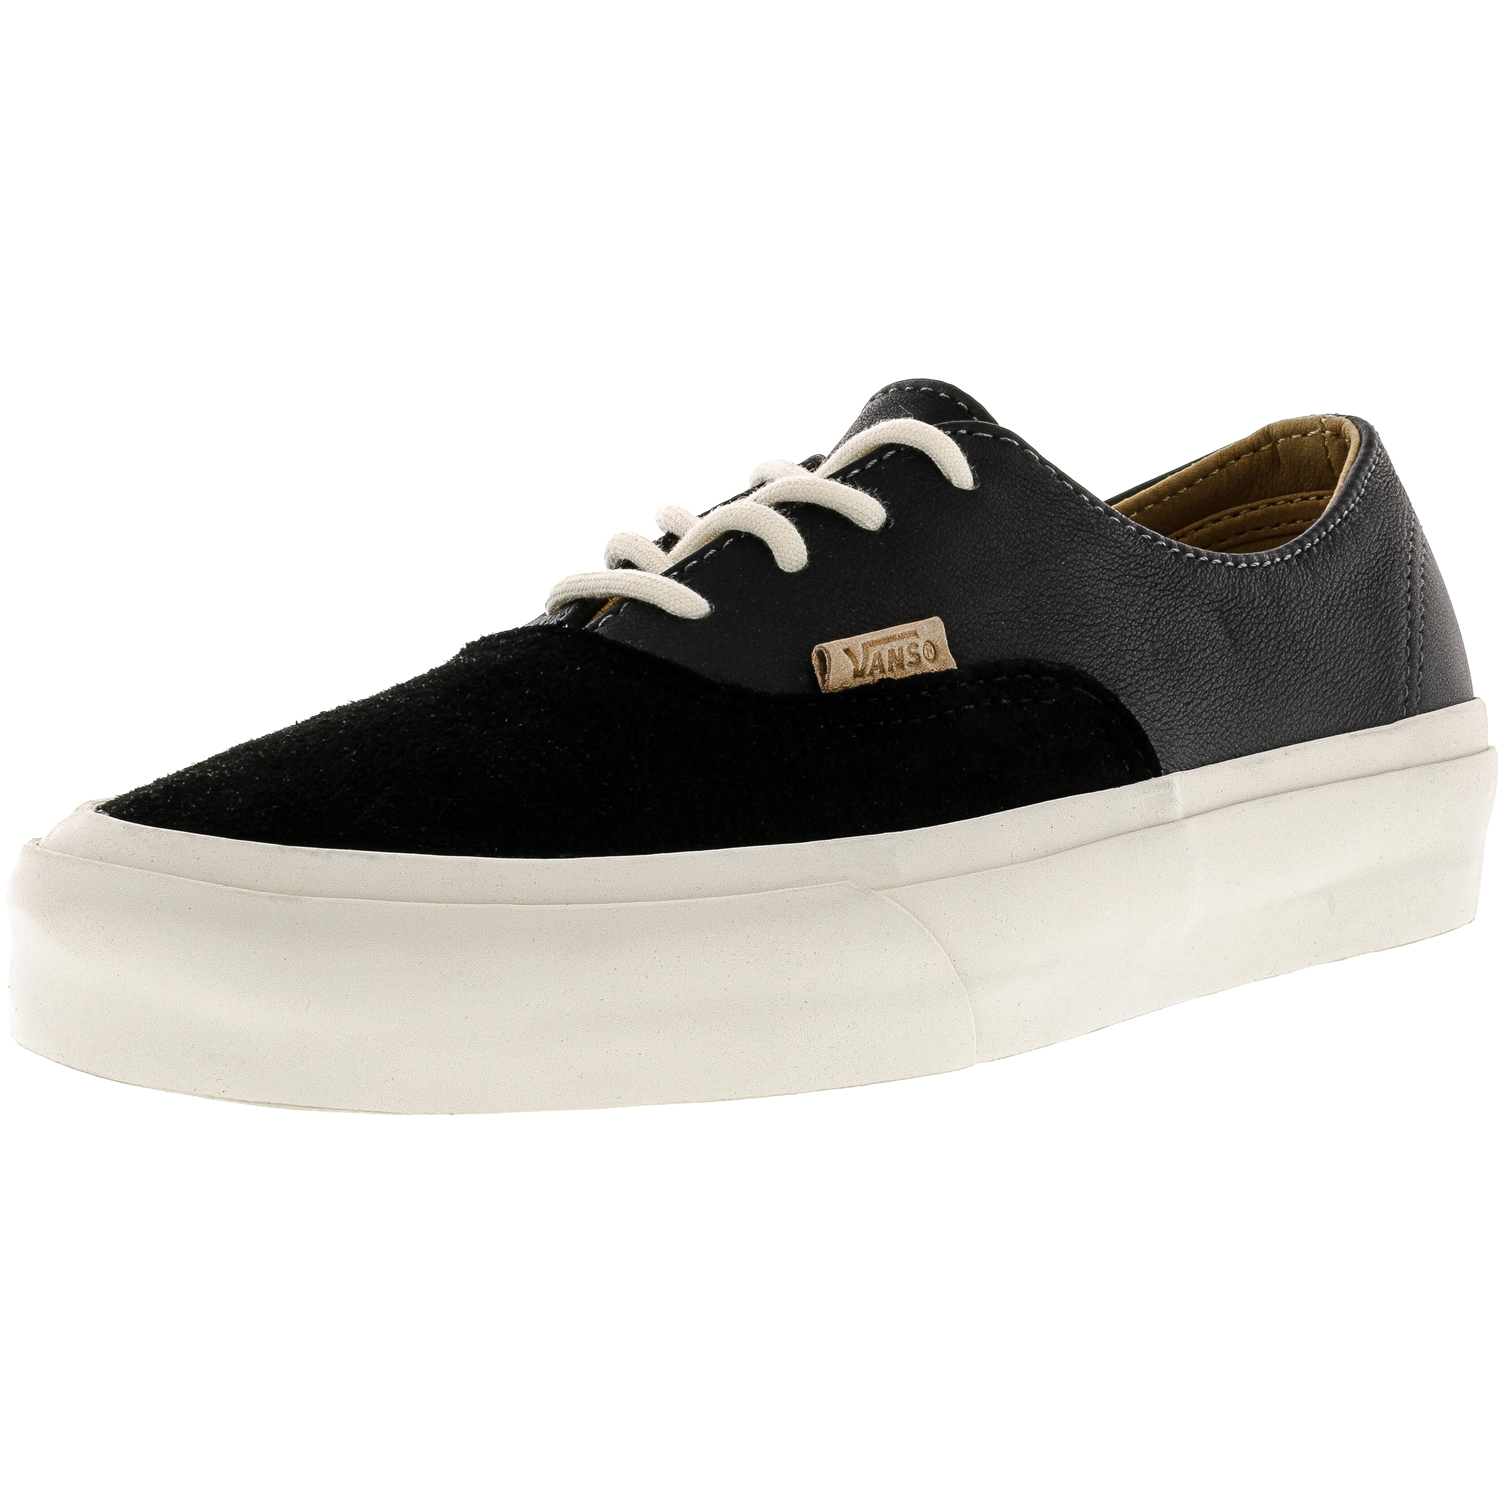 Vans Authentic Decon Pig Suede And Leather Black Ankle-High Skateboarding Shoe - 7M / 5.5M